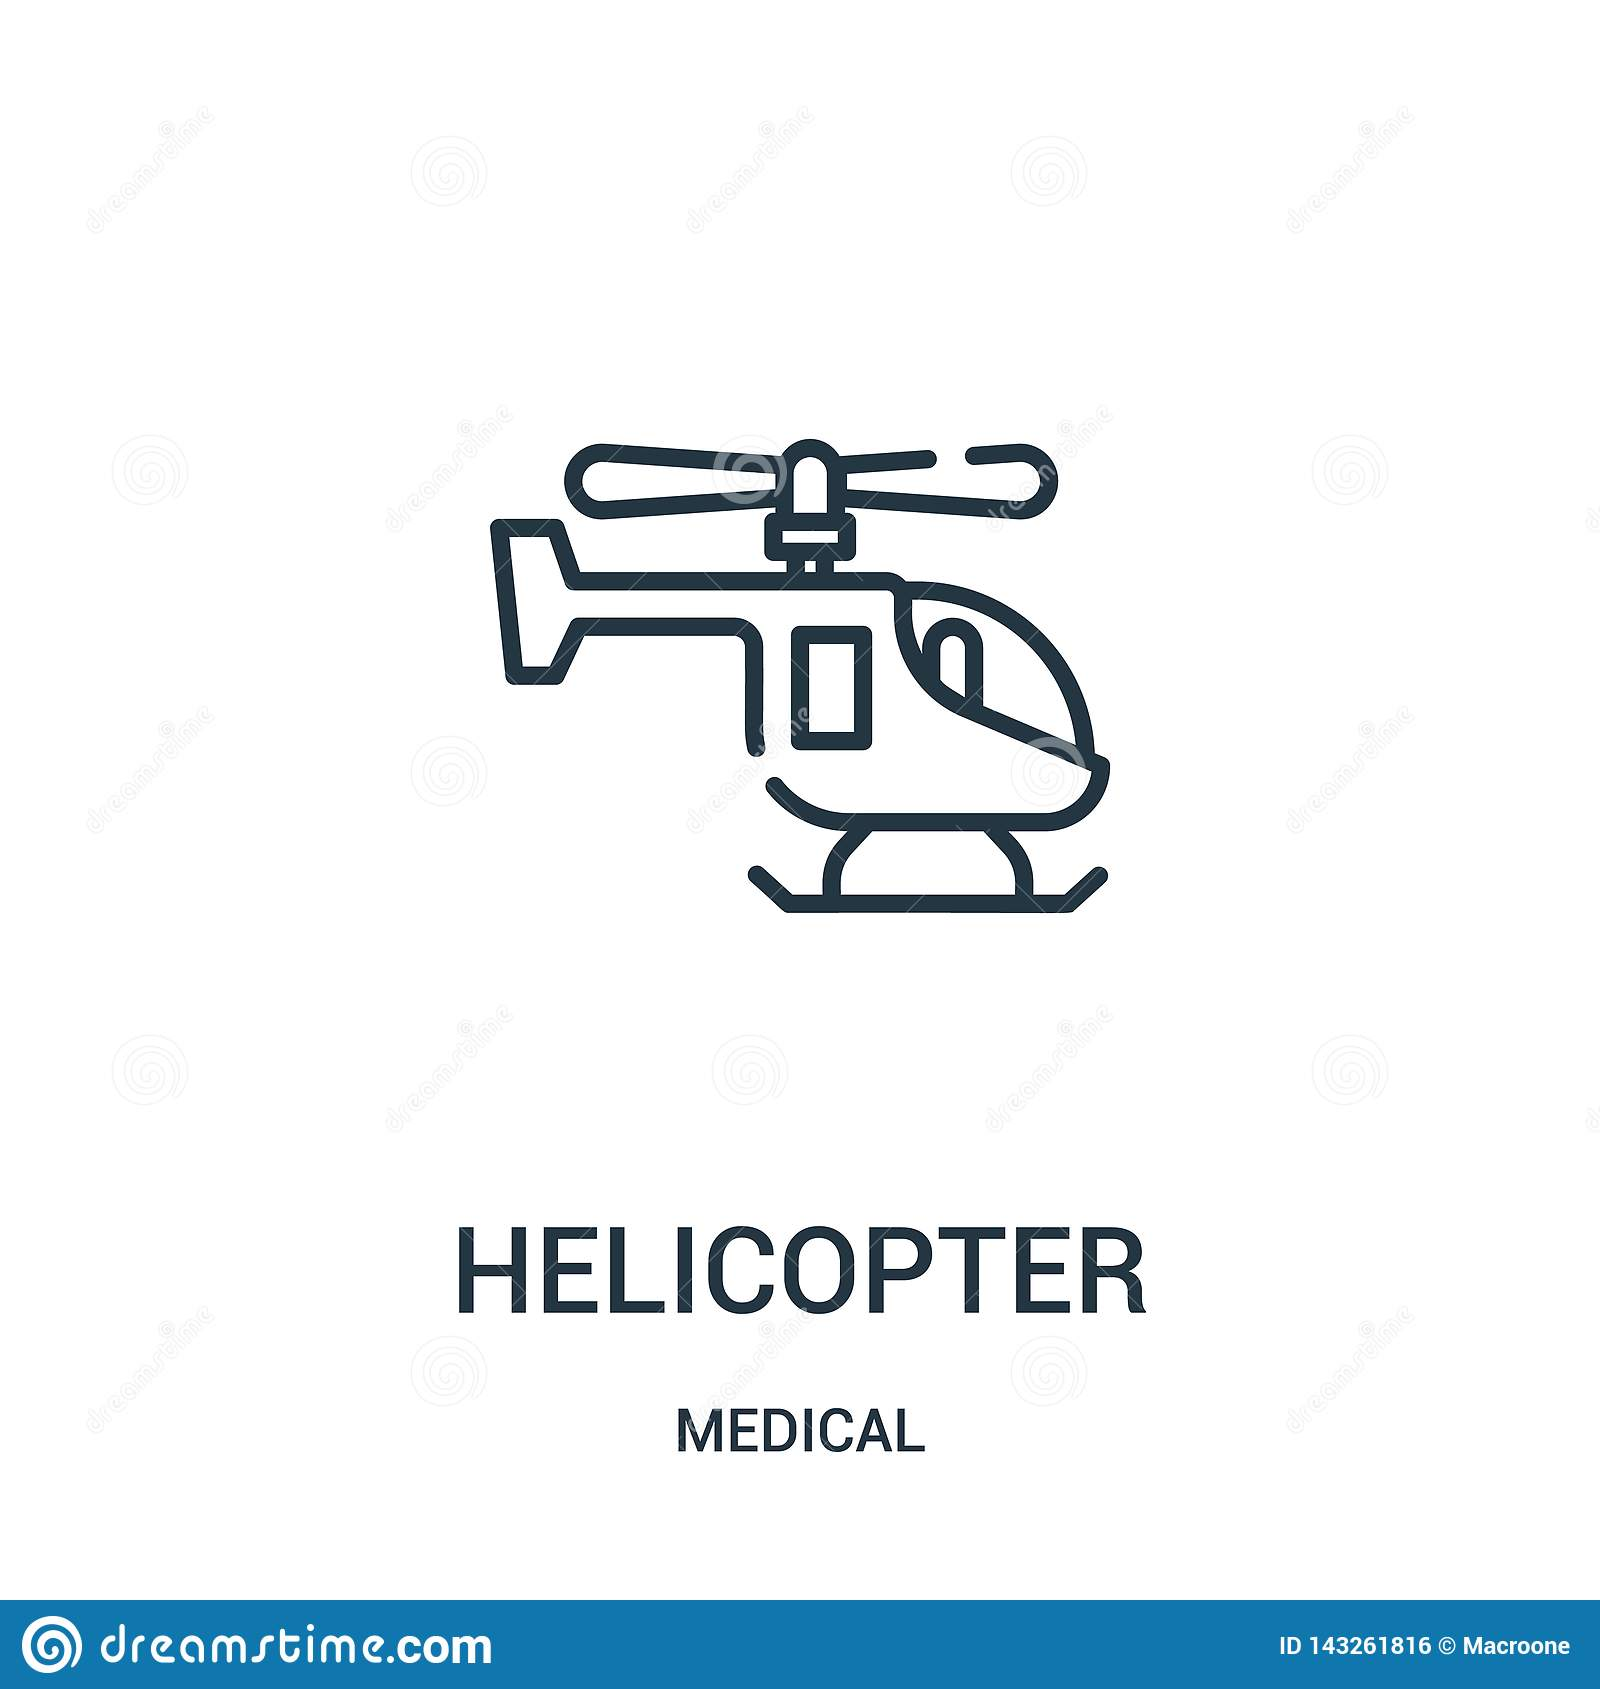 helicopter icon vector from medical collection. Thin line helicopter outline icon vector illustration